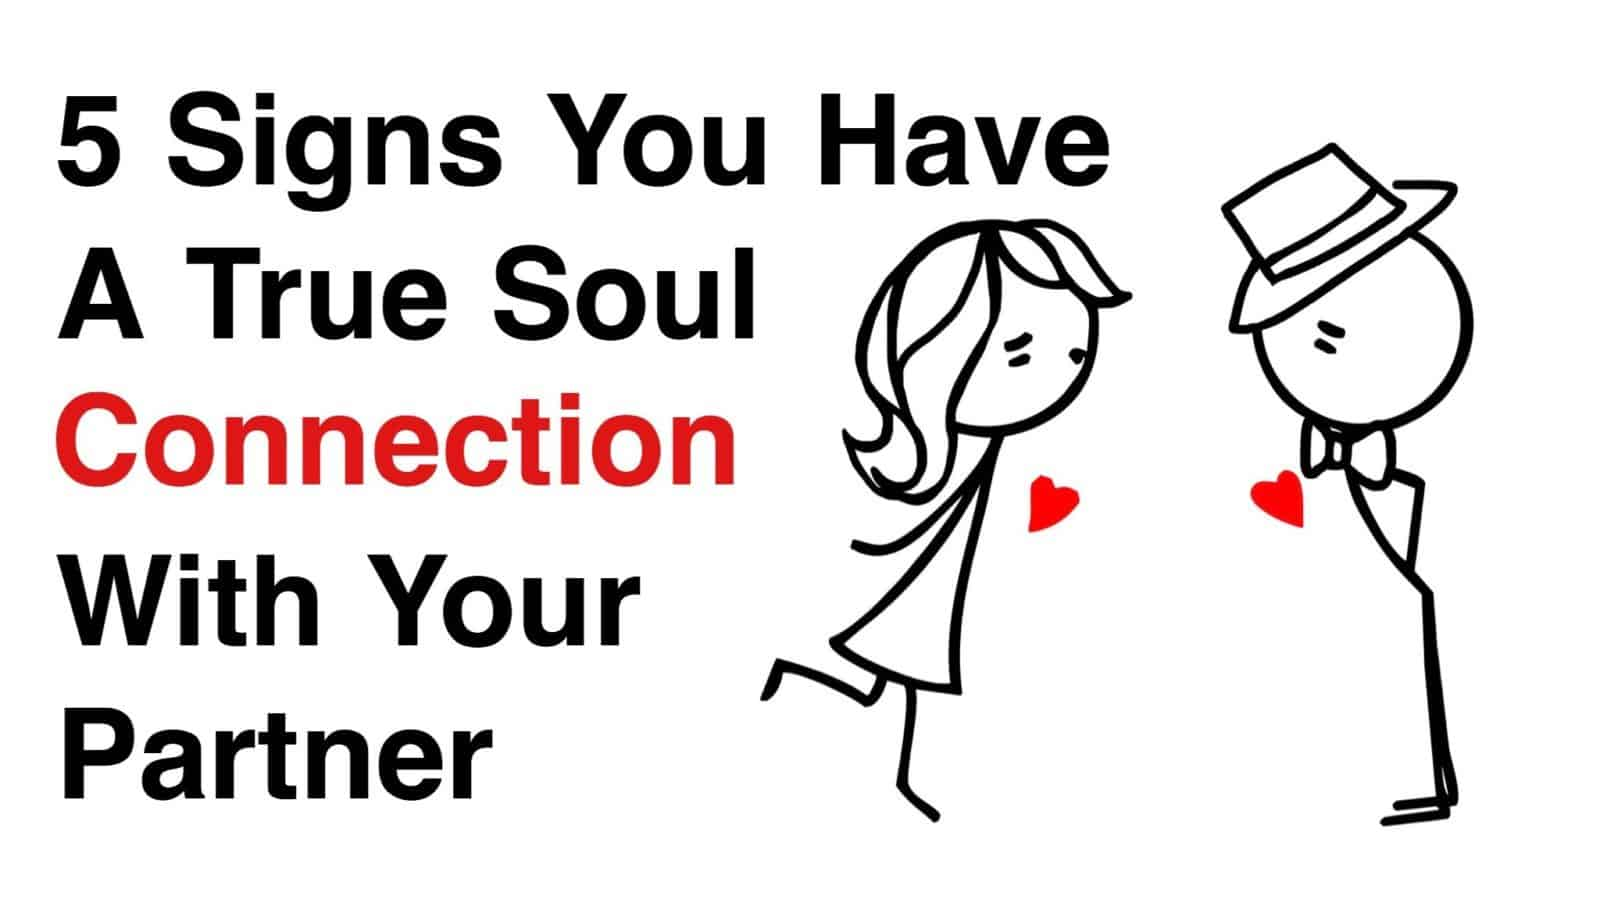 4 Signs You Have A True Soul Connection With Your Partner